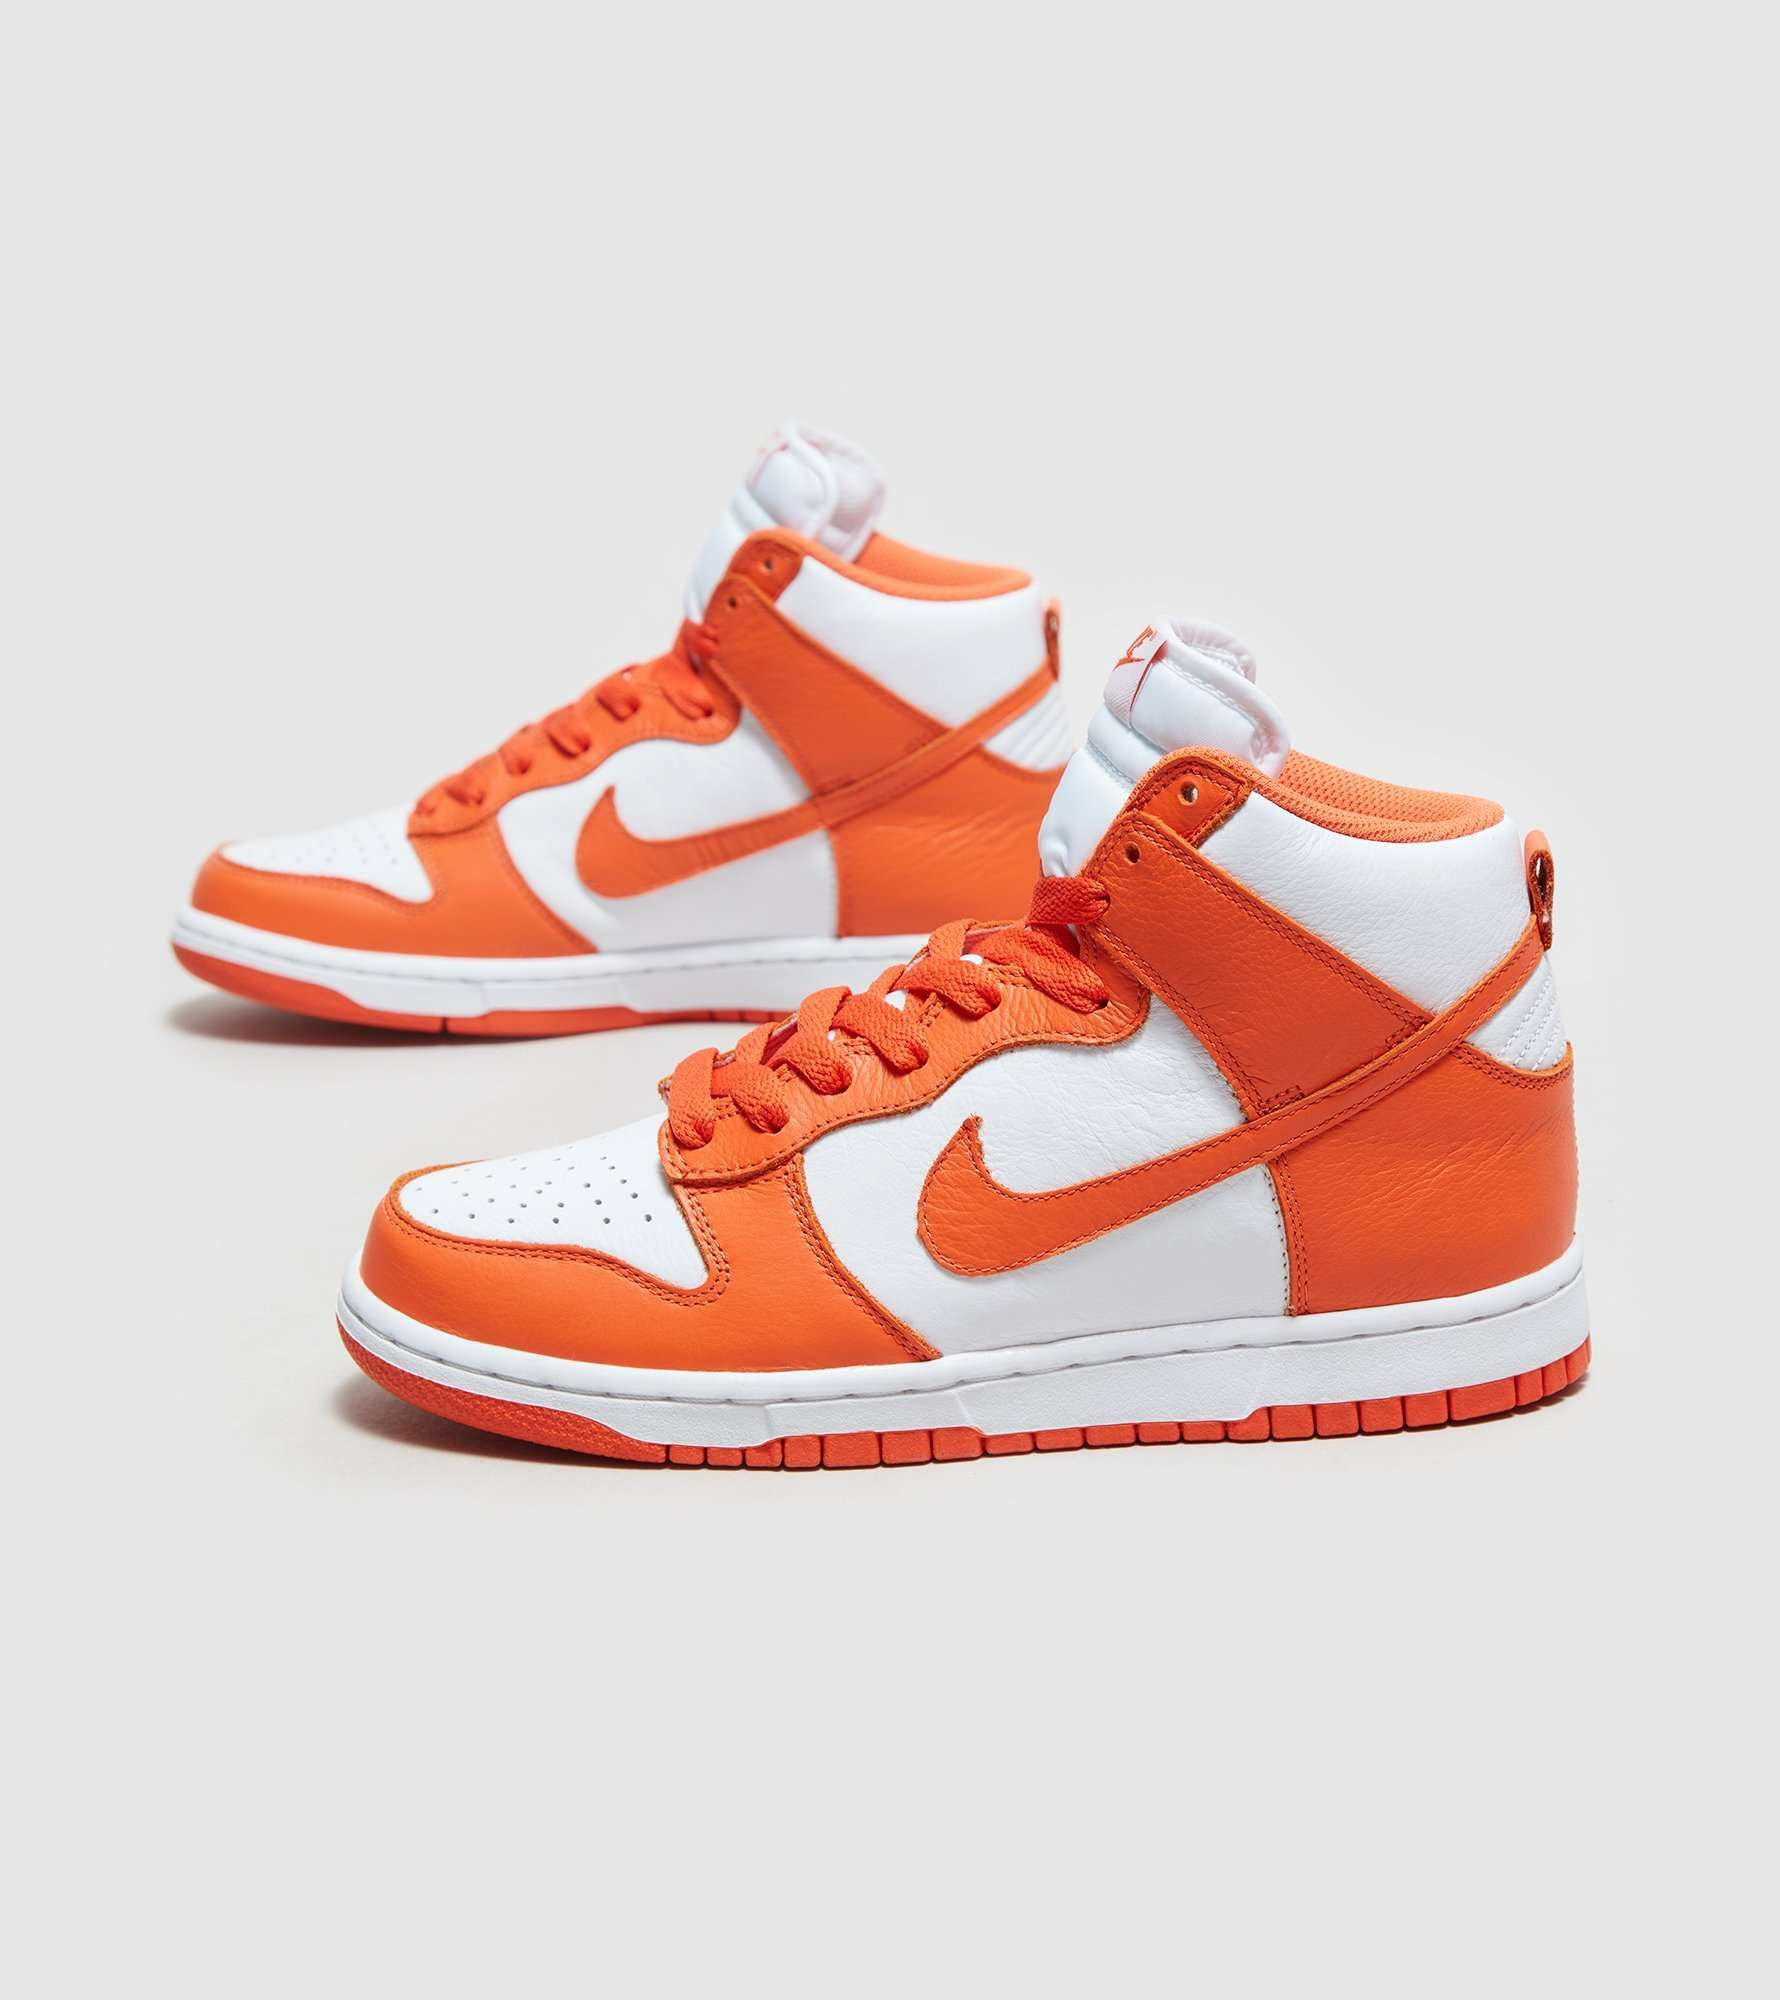 b55abd27a22d3e Nike Dunk Retro QS  Syracuse  Women s - find out more on our site. Find the  freshest in trainers and clothing online now.